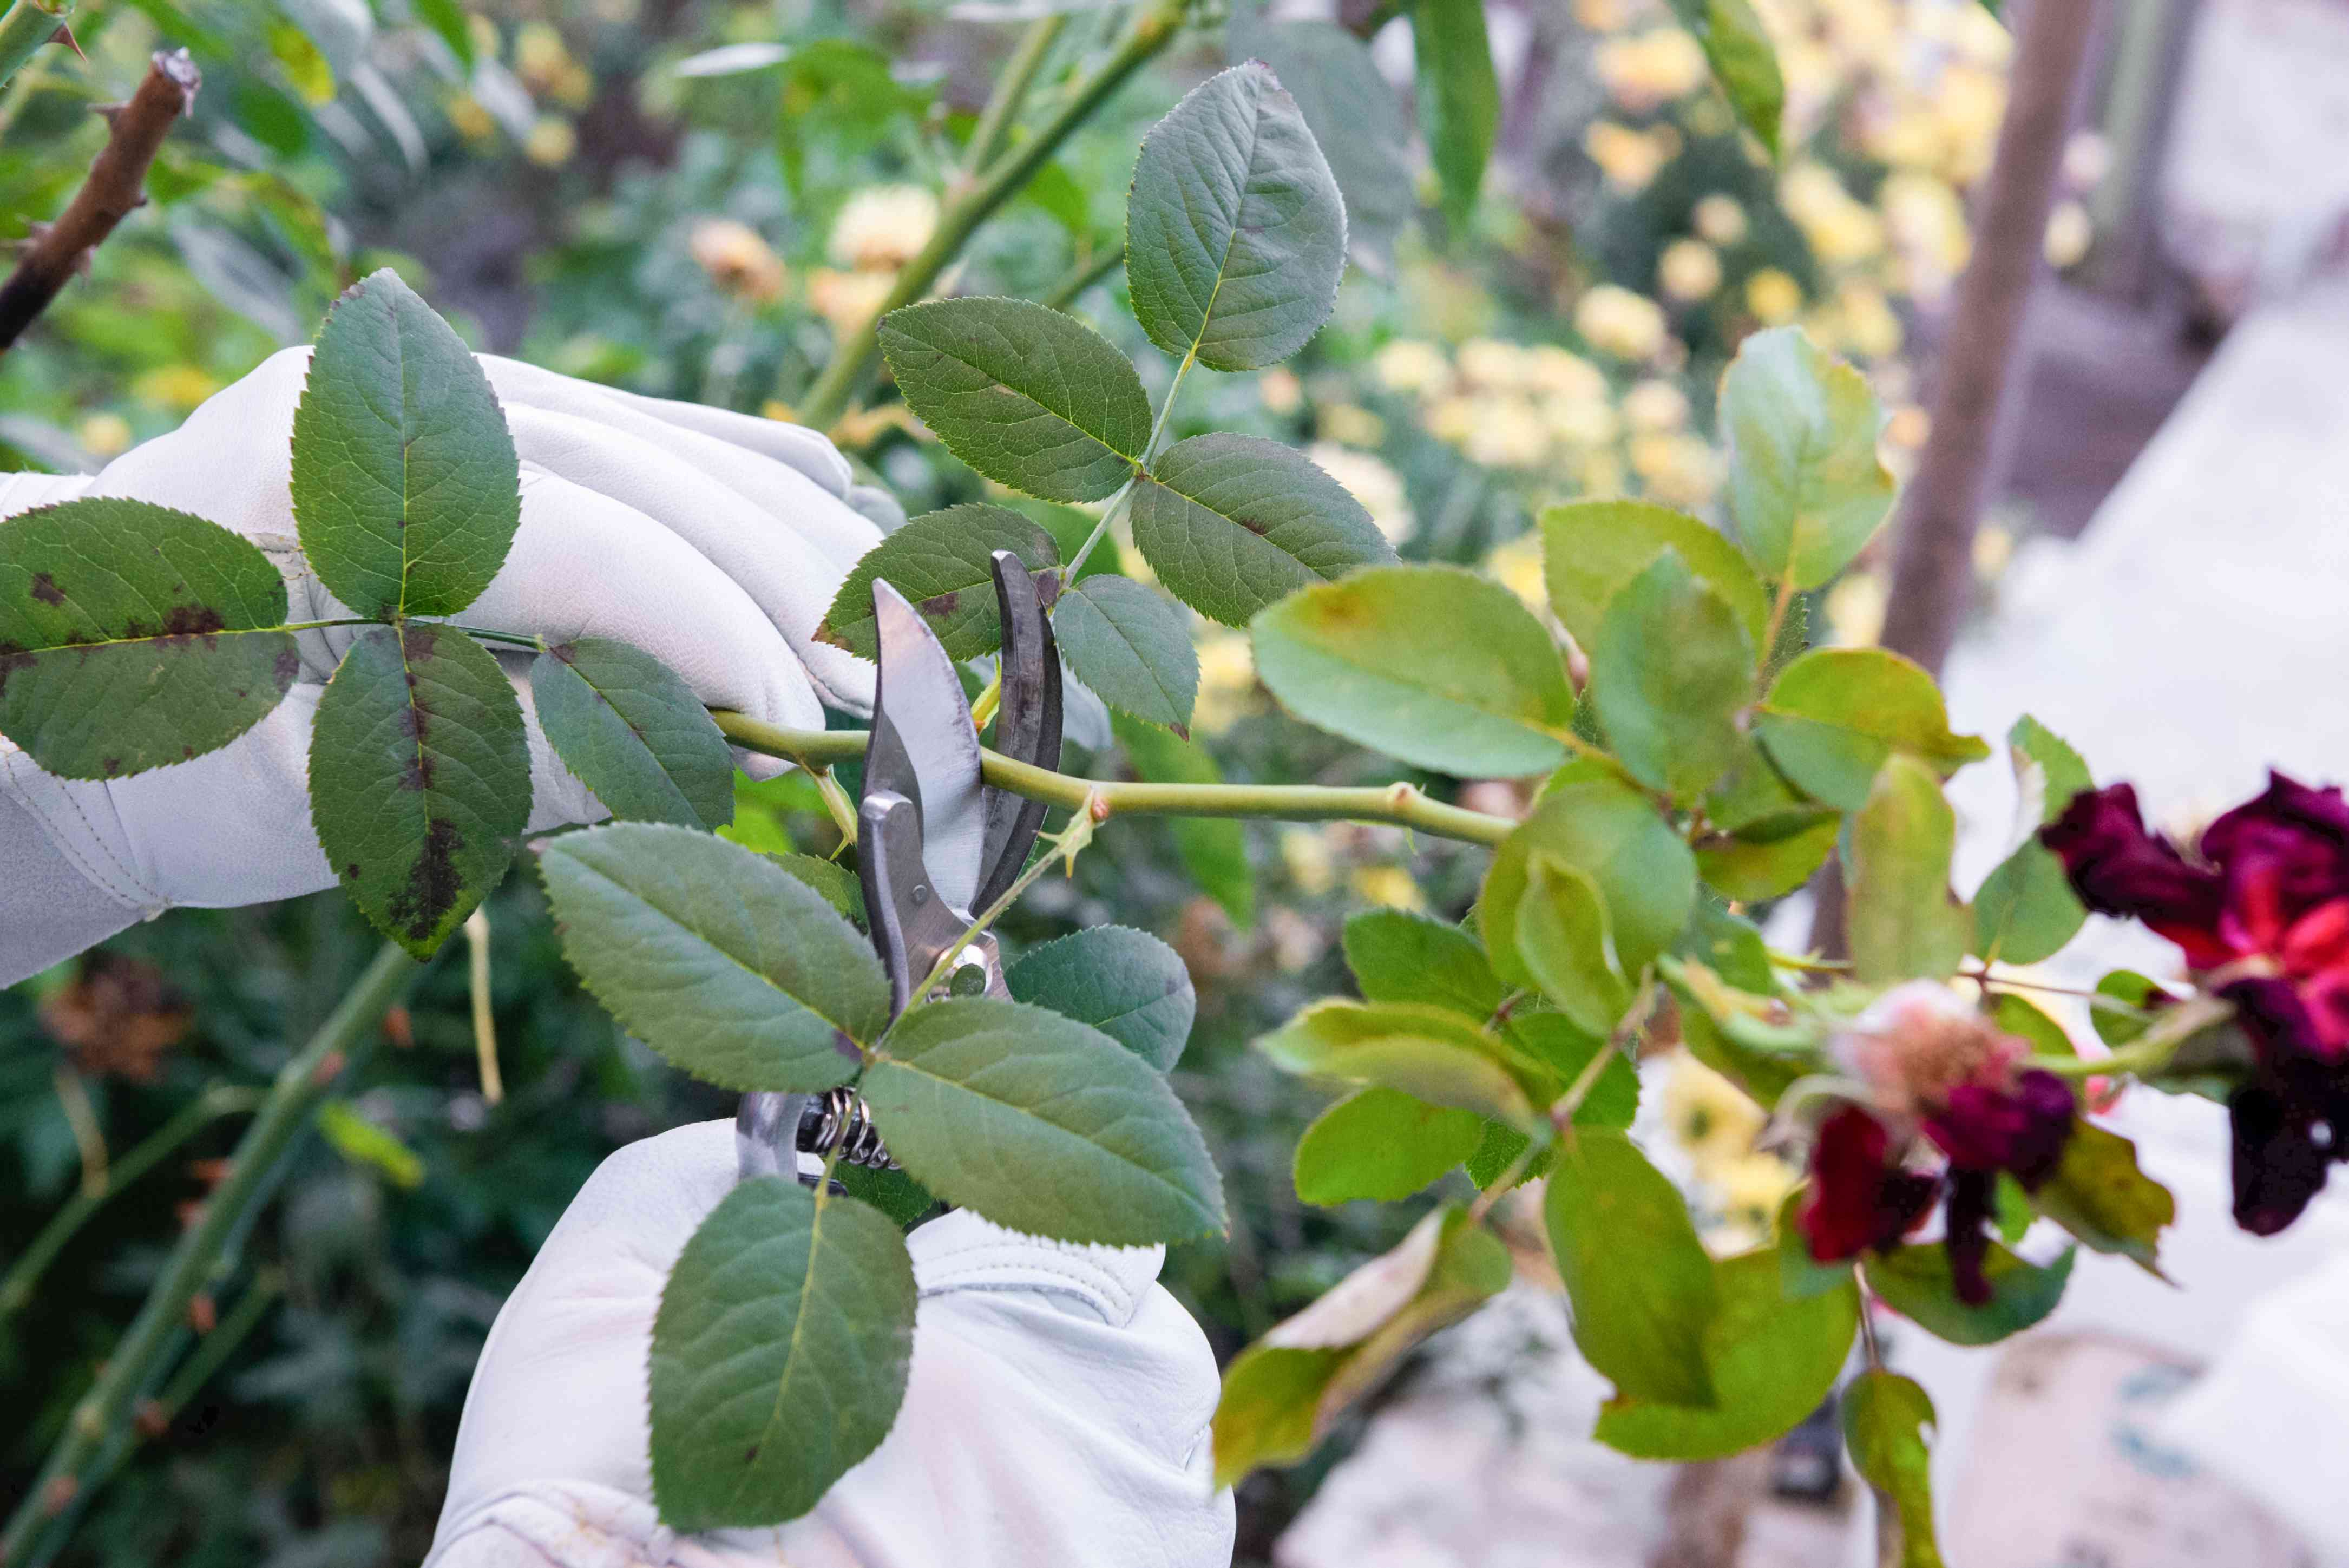 Hybrid tea rose branches being deadheaded with hand pruners